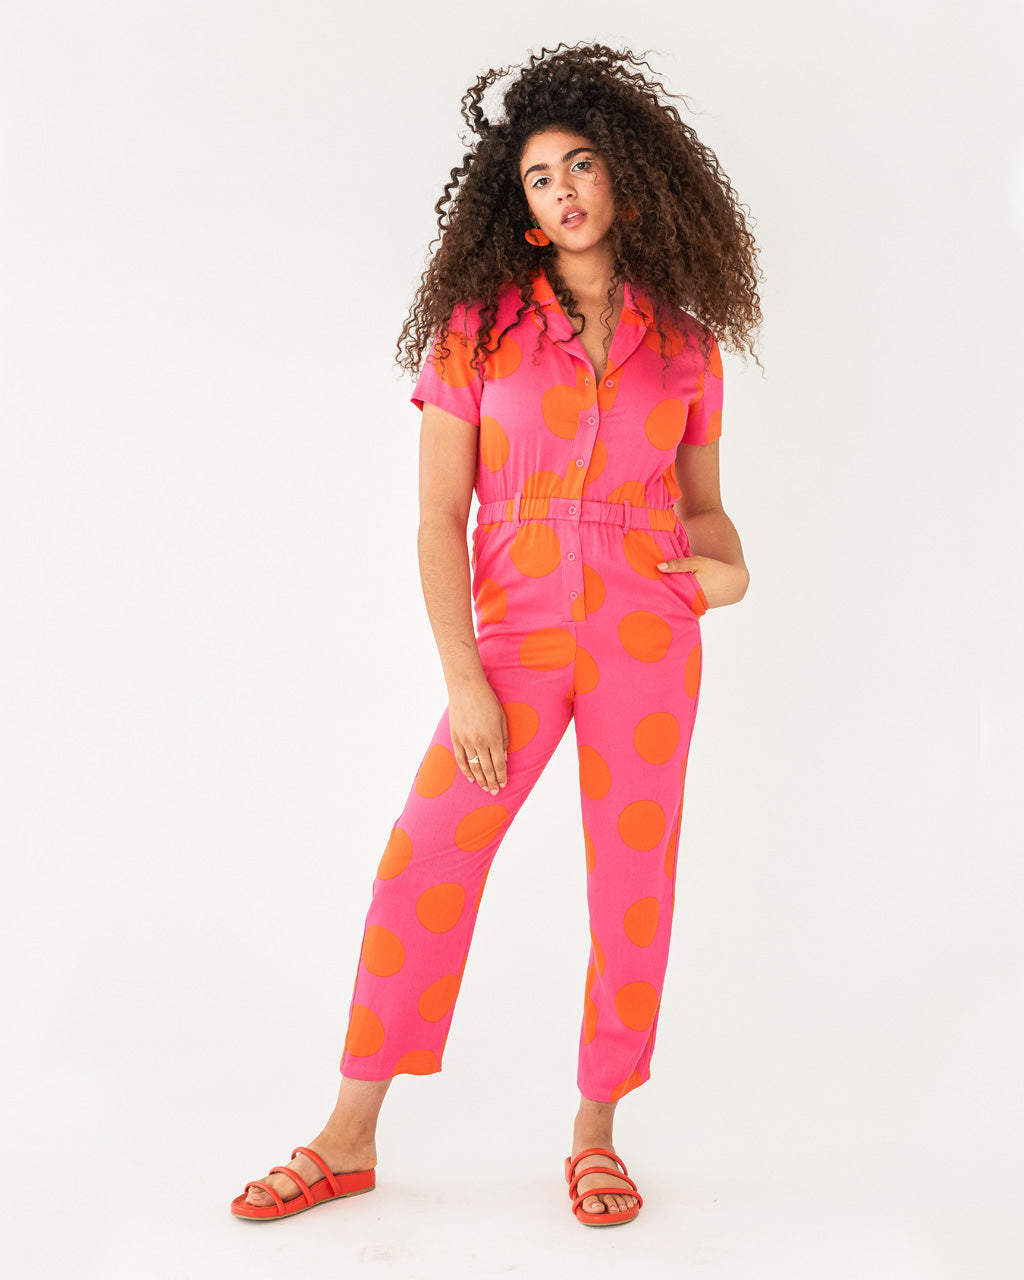 Pink short sleeve jumpsuit with large orange polka dots shown on model